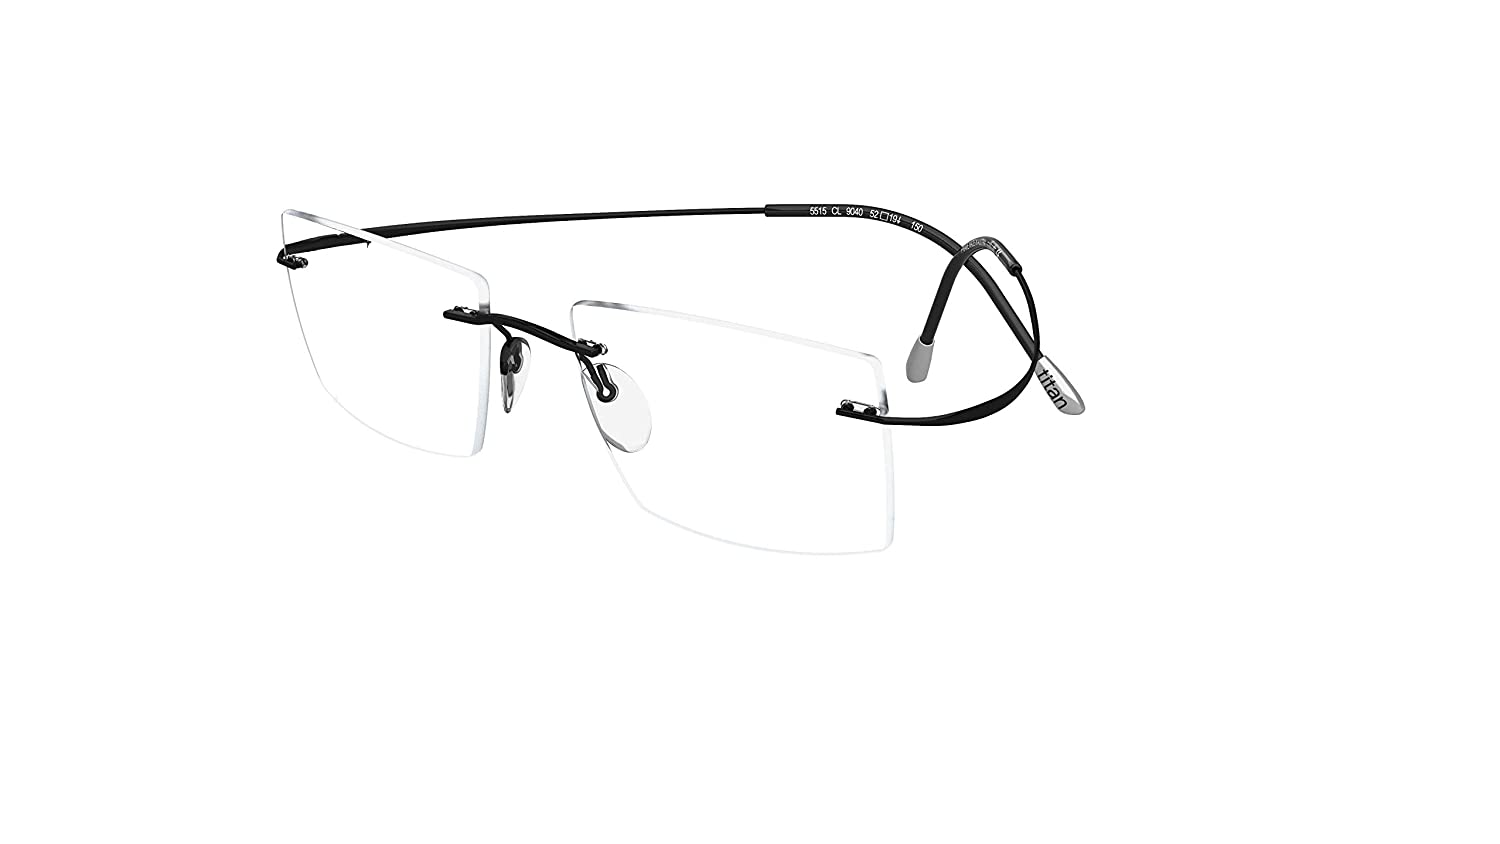 7f3d59590af Amazon.com  SILHOUETTE Eyeglasses TMA Must Collection 7799 6074 Black  Optical Frame 21x160mm  Clothing